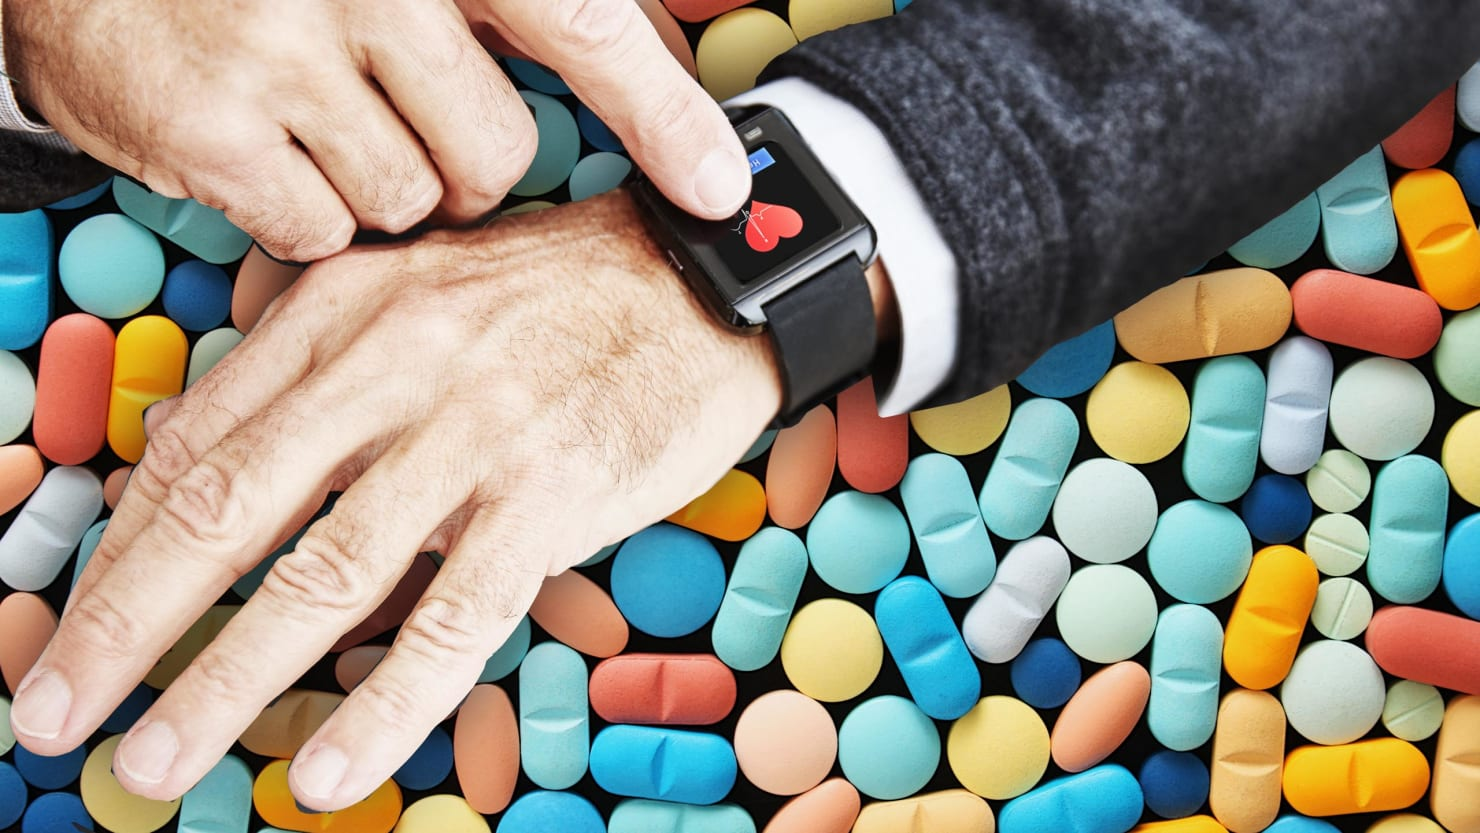 photo of hand with fitbit fit bit showing heart over tablets and pills john hancock insurance company west virginia life health fitness tracker